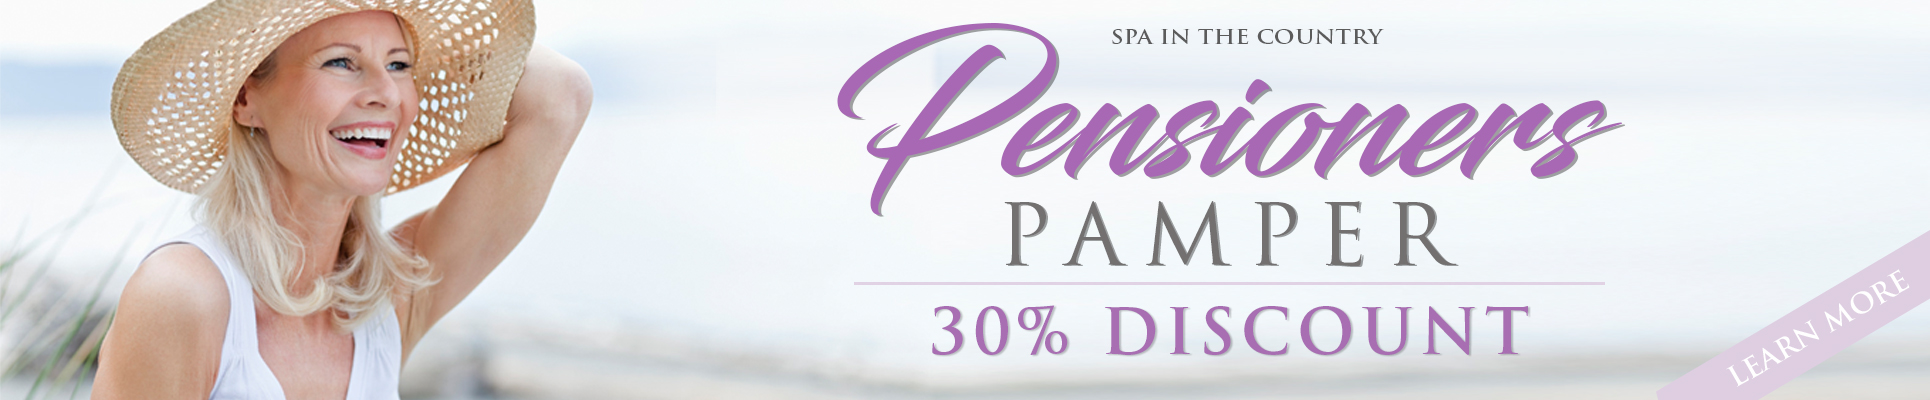 Spa in the Country Midweek Treatment Packages for Spas in Gauteng & Rustenburg